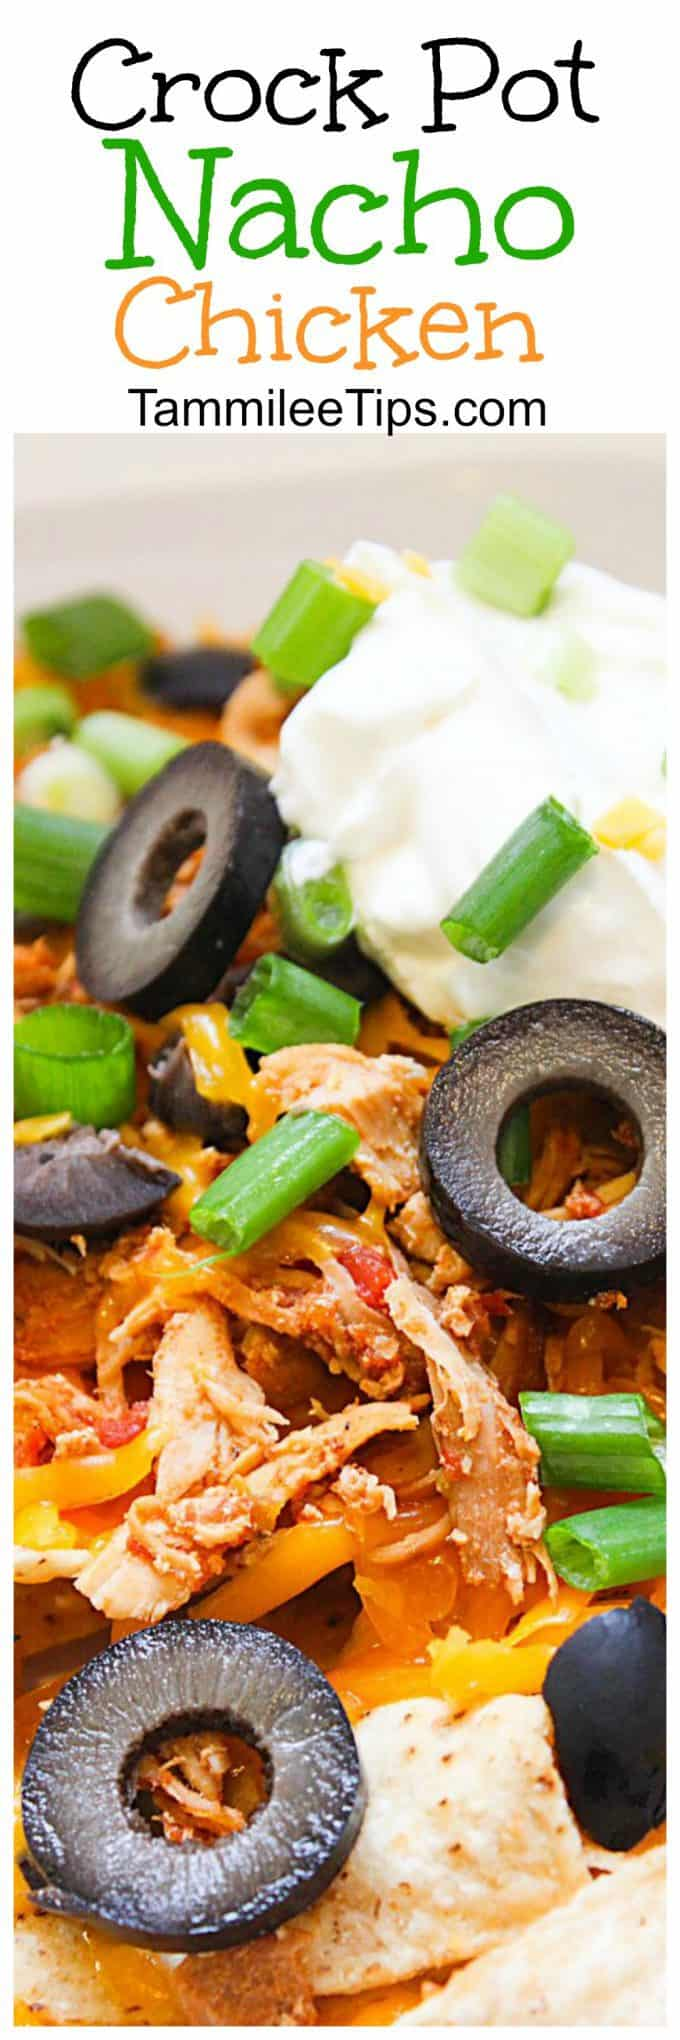 Super easy Crock Pot Nacho Chicken Recipe is perfect for Super Bowl football parties or any night of the week! The slow cooker does all the world and you only need a few ingredients. This crockpot nacho chicken also works great in burritos or tacos!